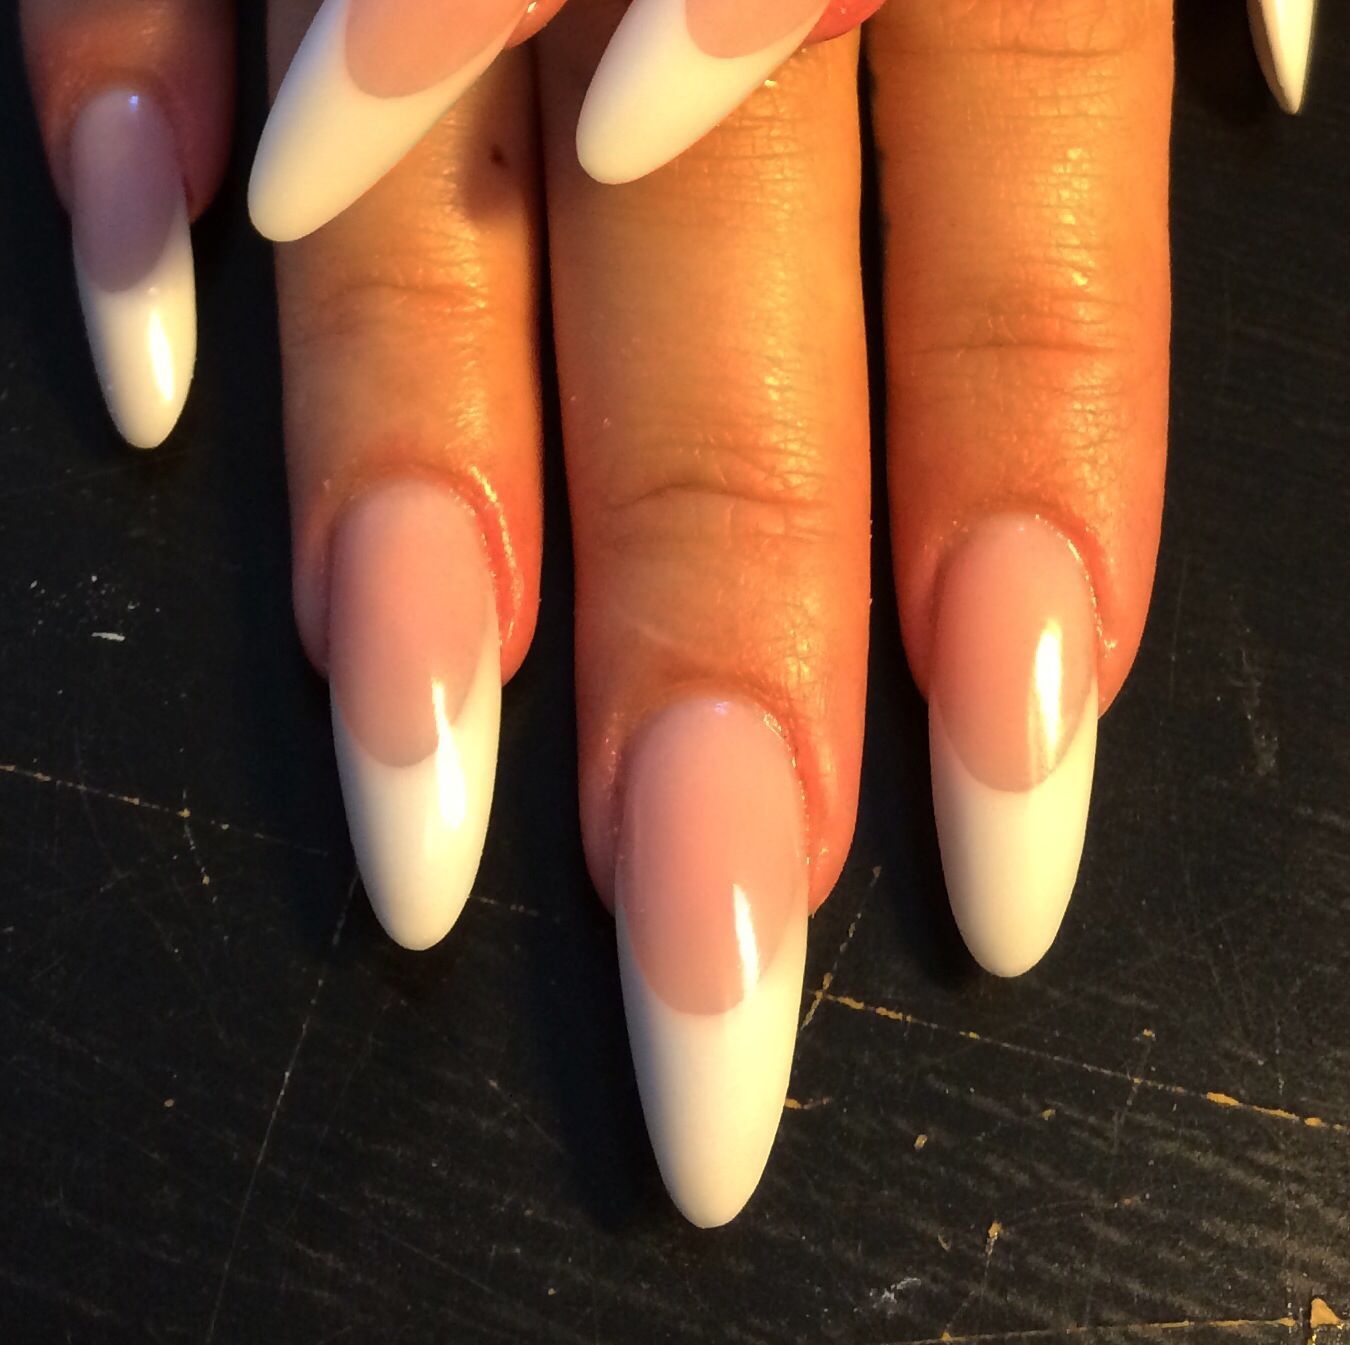 Pink And White Almond Shaped L P Nails French Nails White Nails